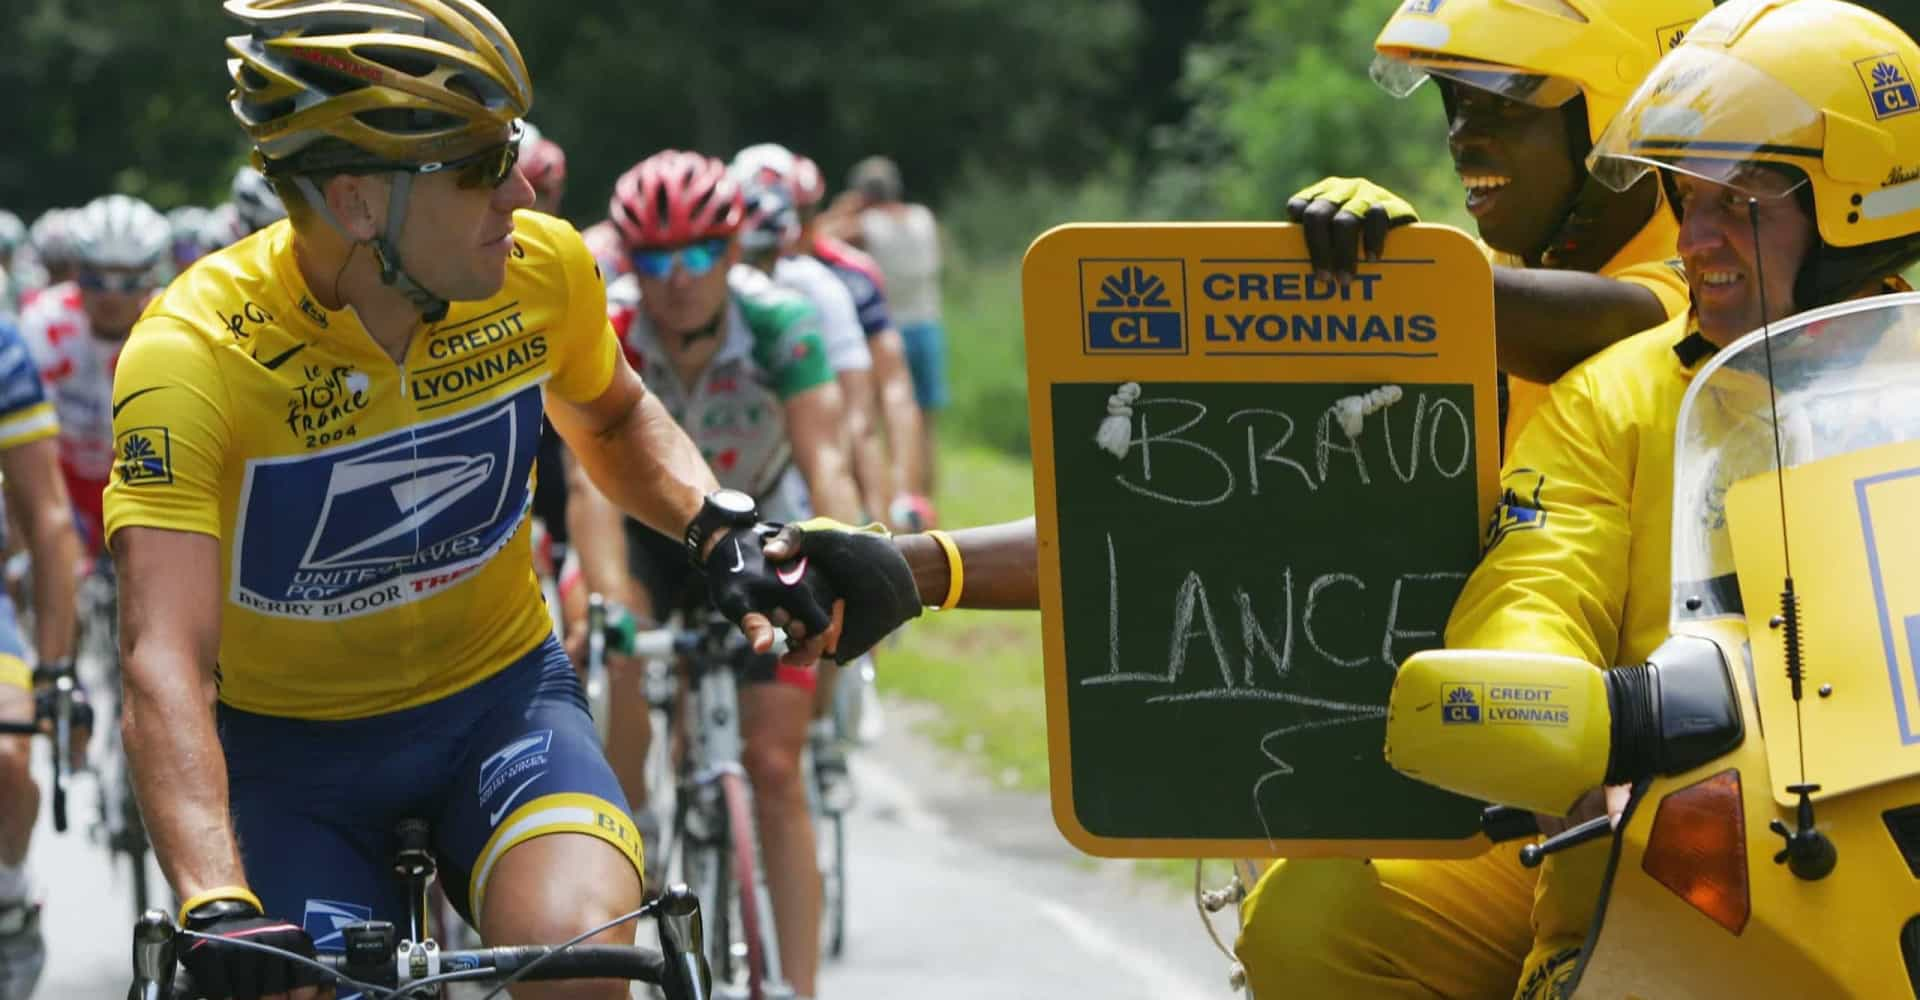 The biggest doping scandals in the history of the Tour de France